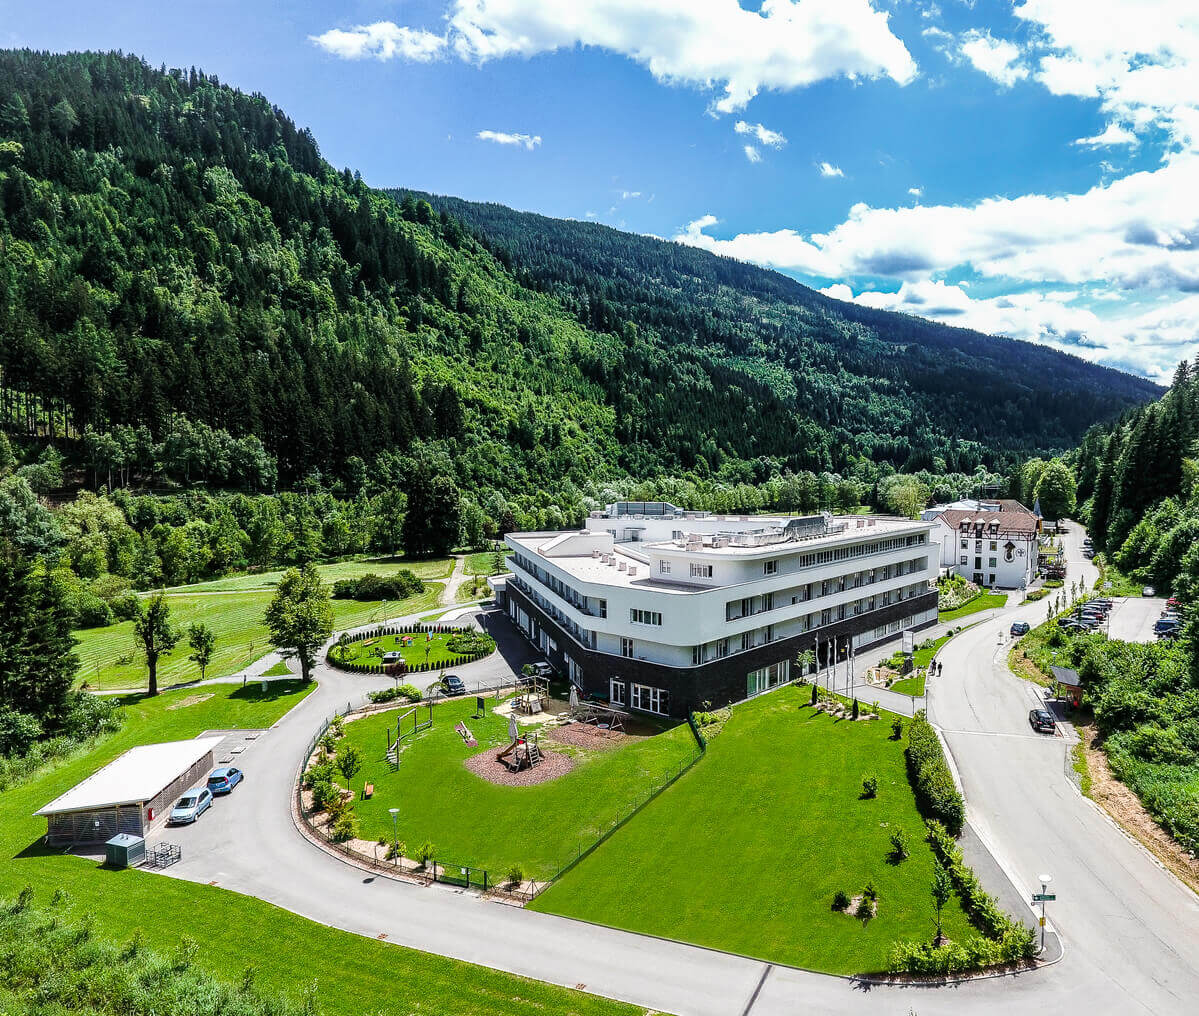 OptimaMed Gesundheitstherme Wildbad (3)